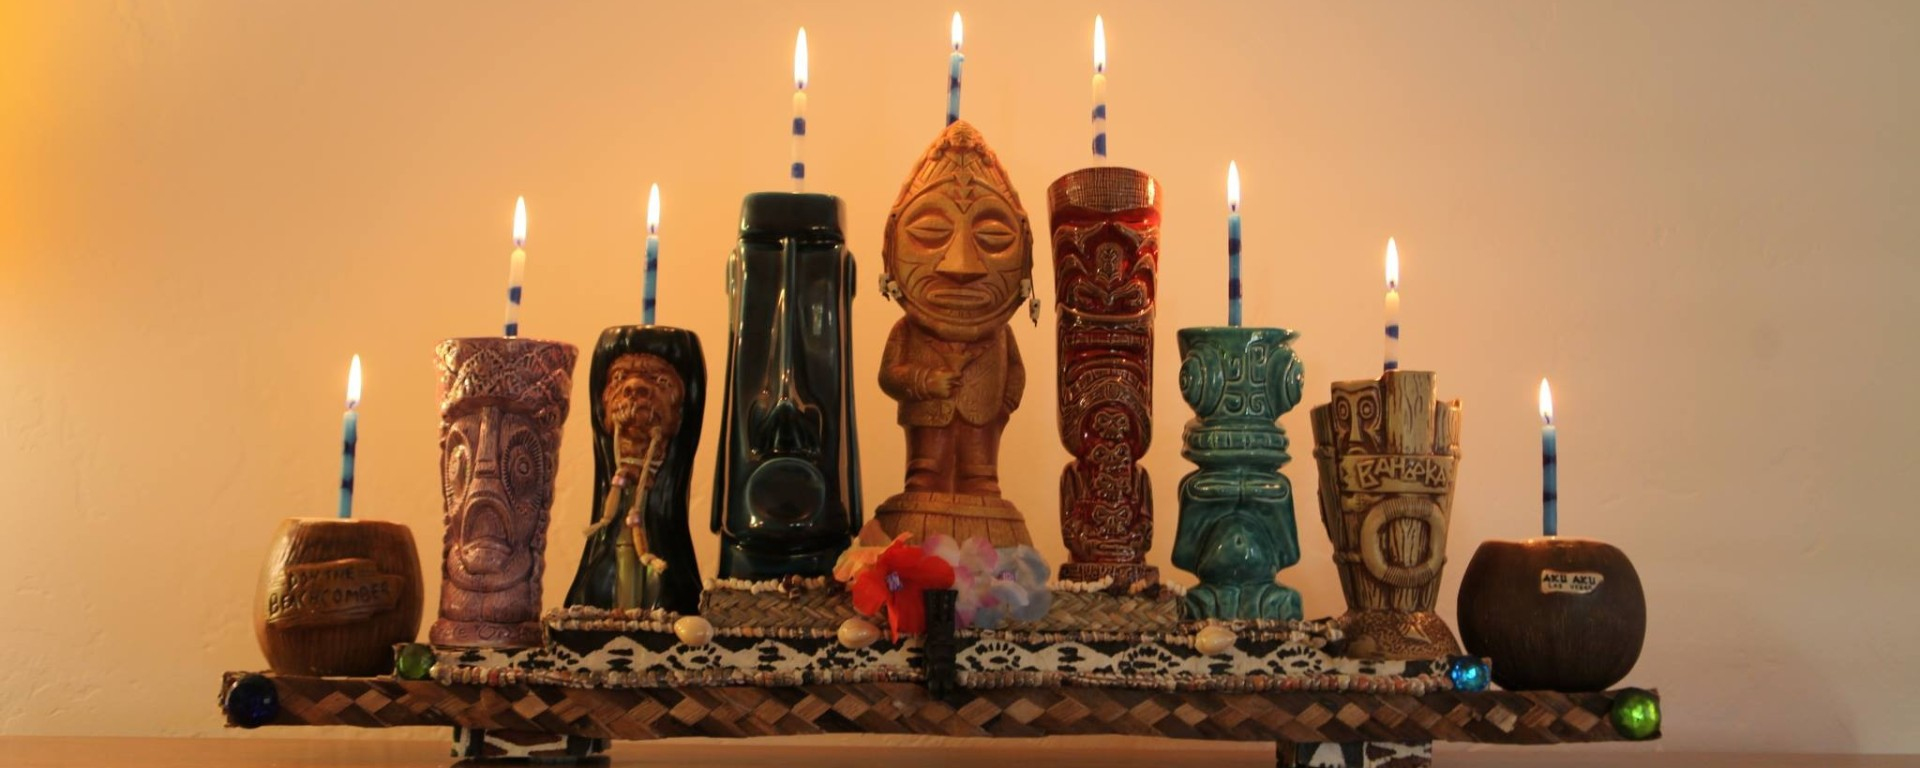 Tiki Mug Menorah A How To From Poly Hai Critiki News Lighting Diagram